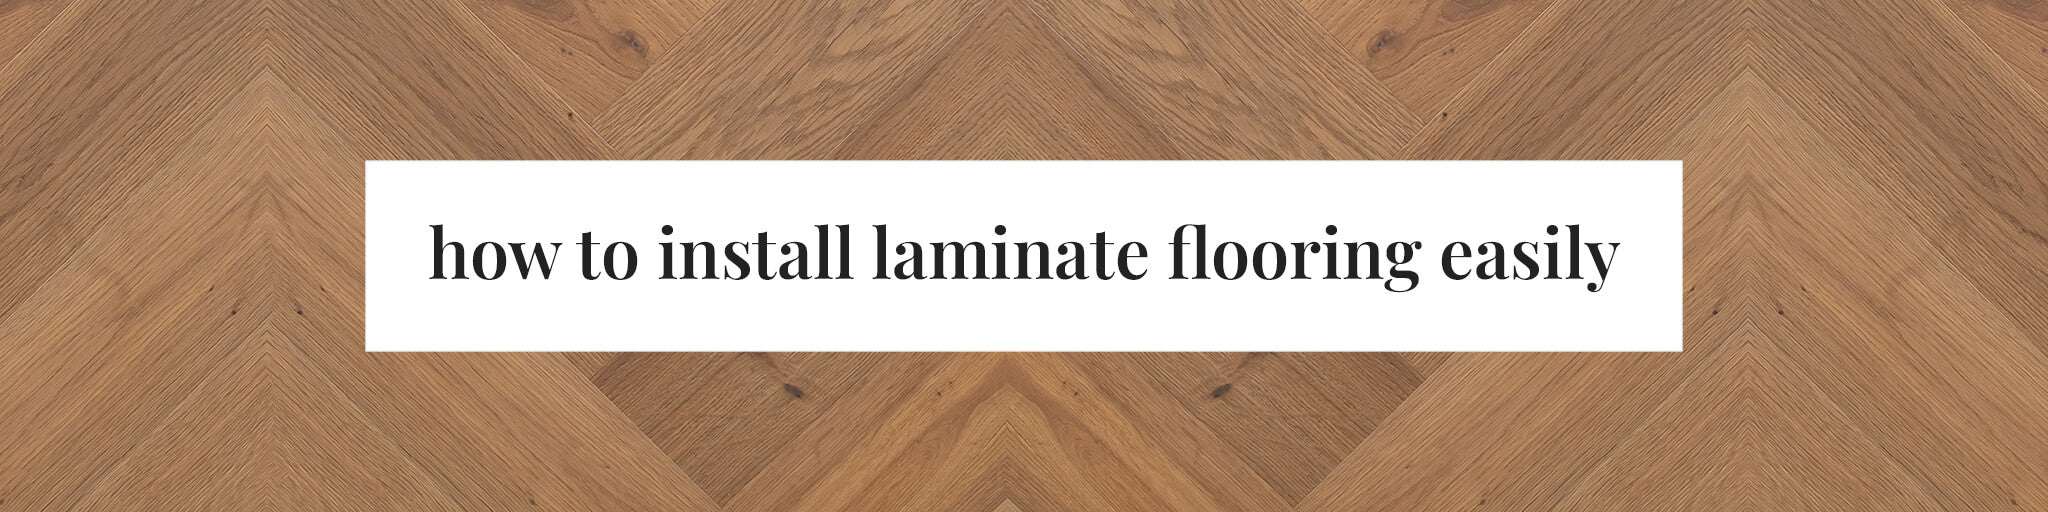 How to Install Laminate Flooring Easily Blog